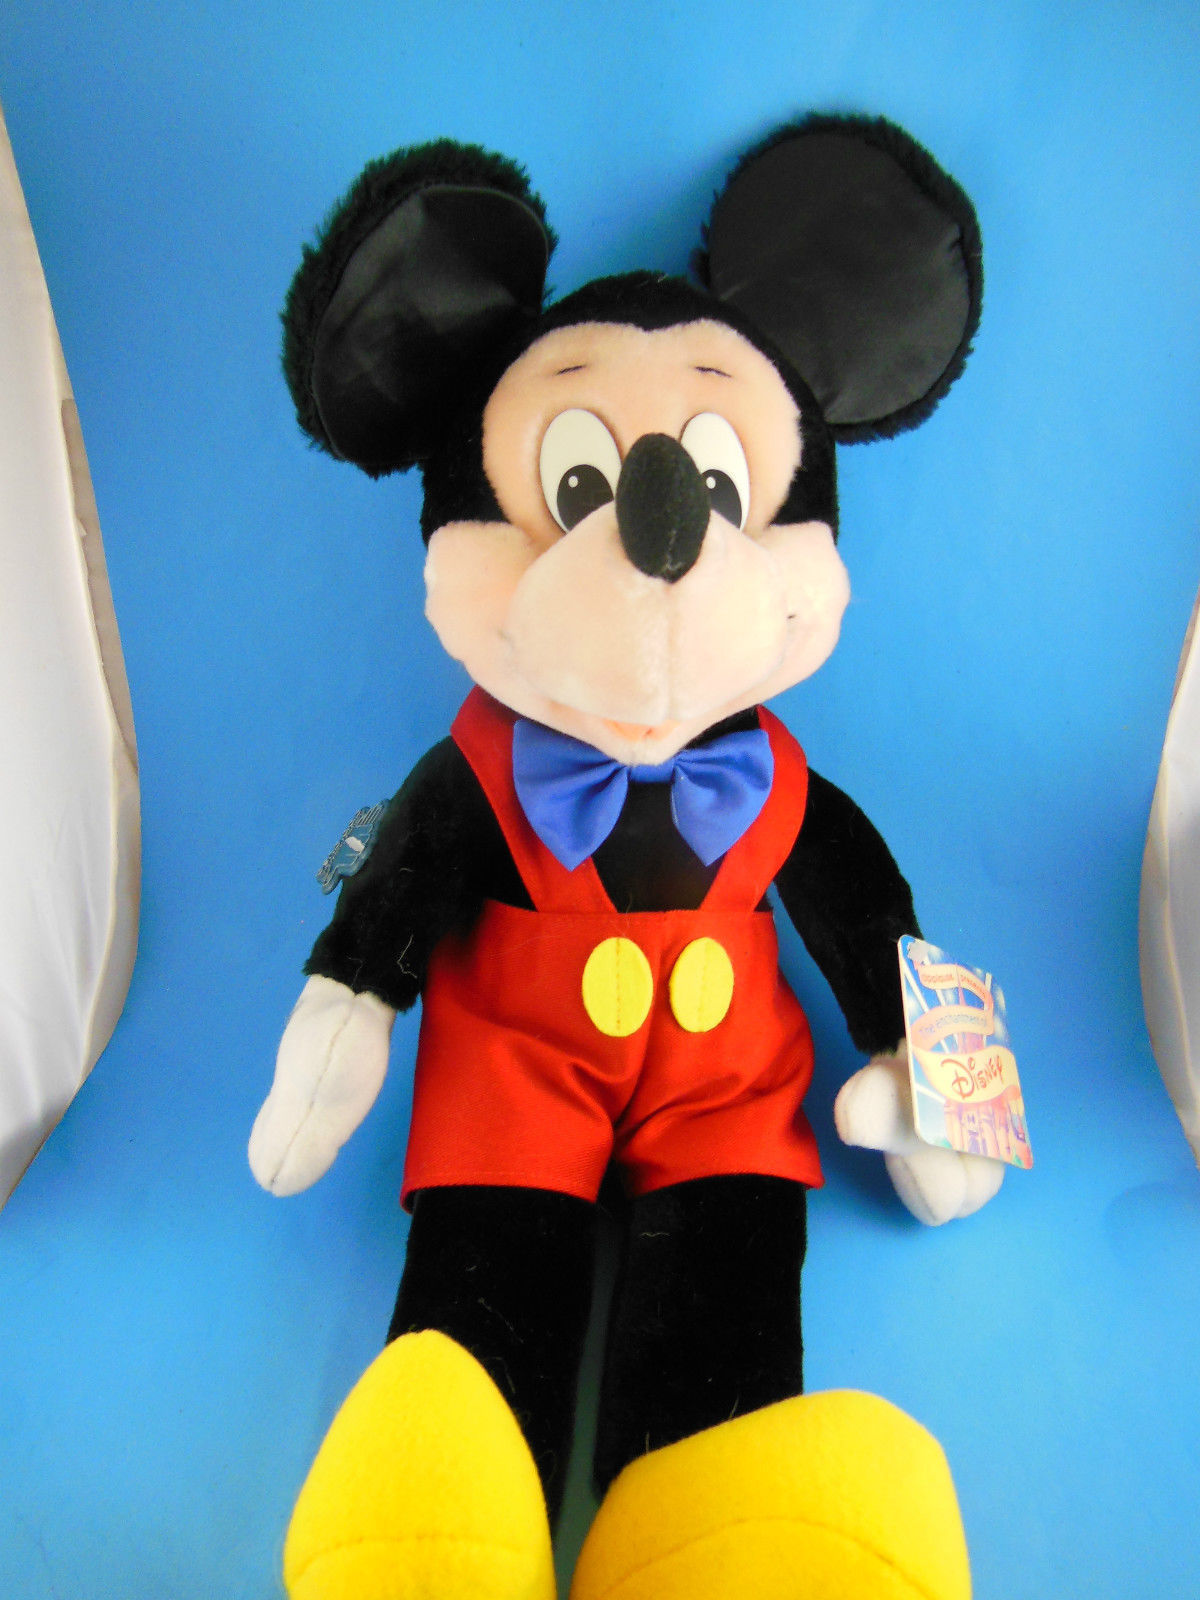 "Vintage Korea Mickey Mouse Doll Disney Applause 17"" inc ears Velvetty fabric MWT image 1"